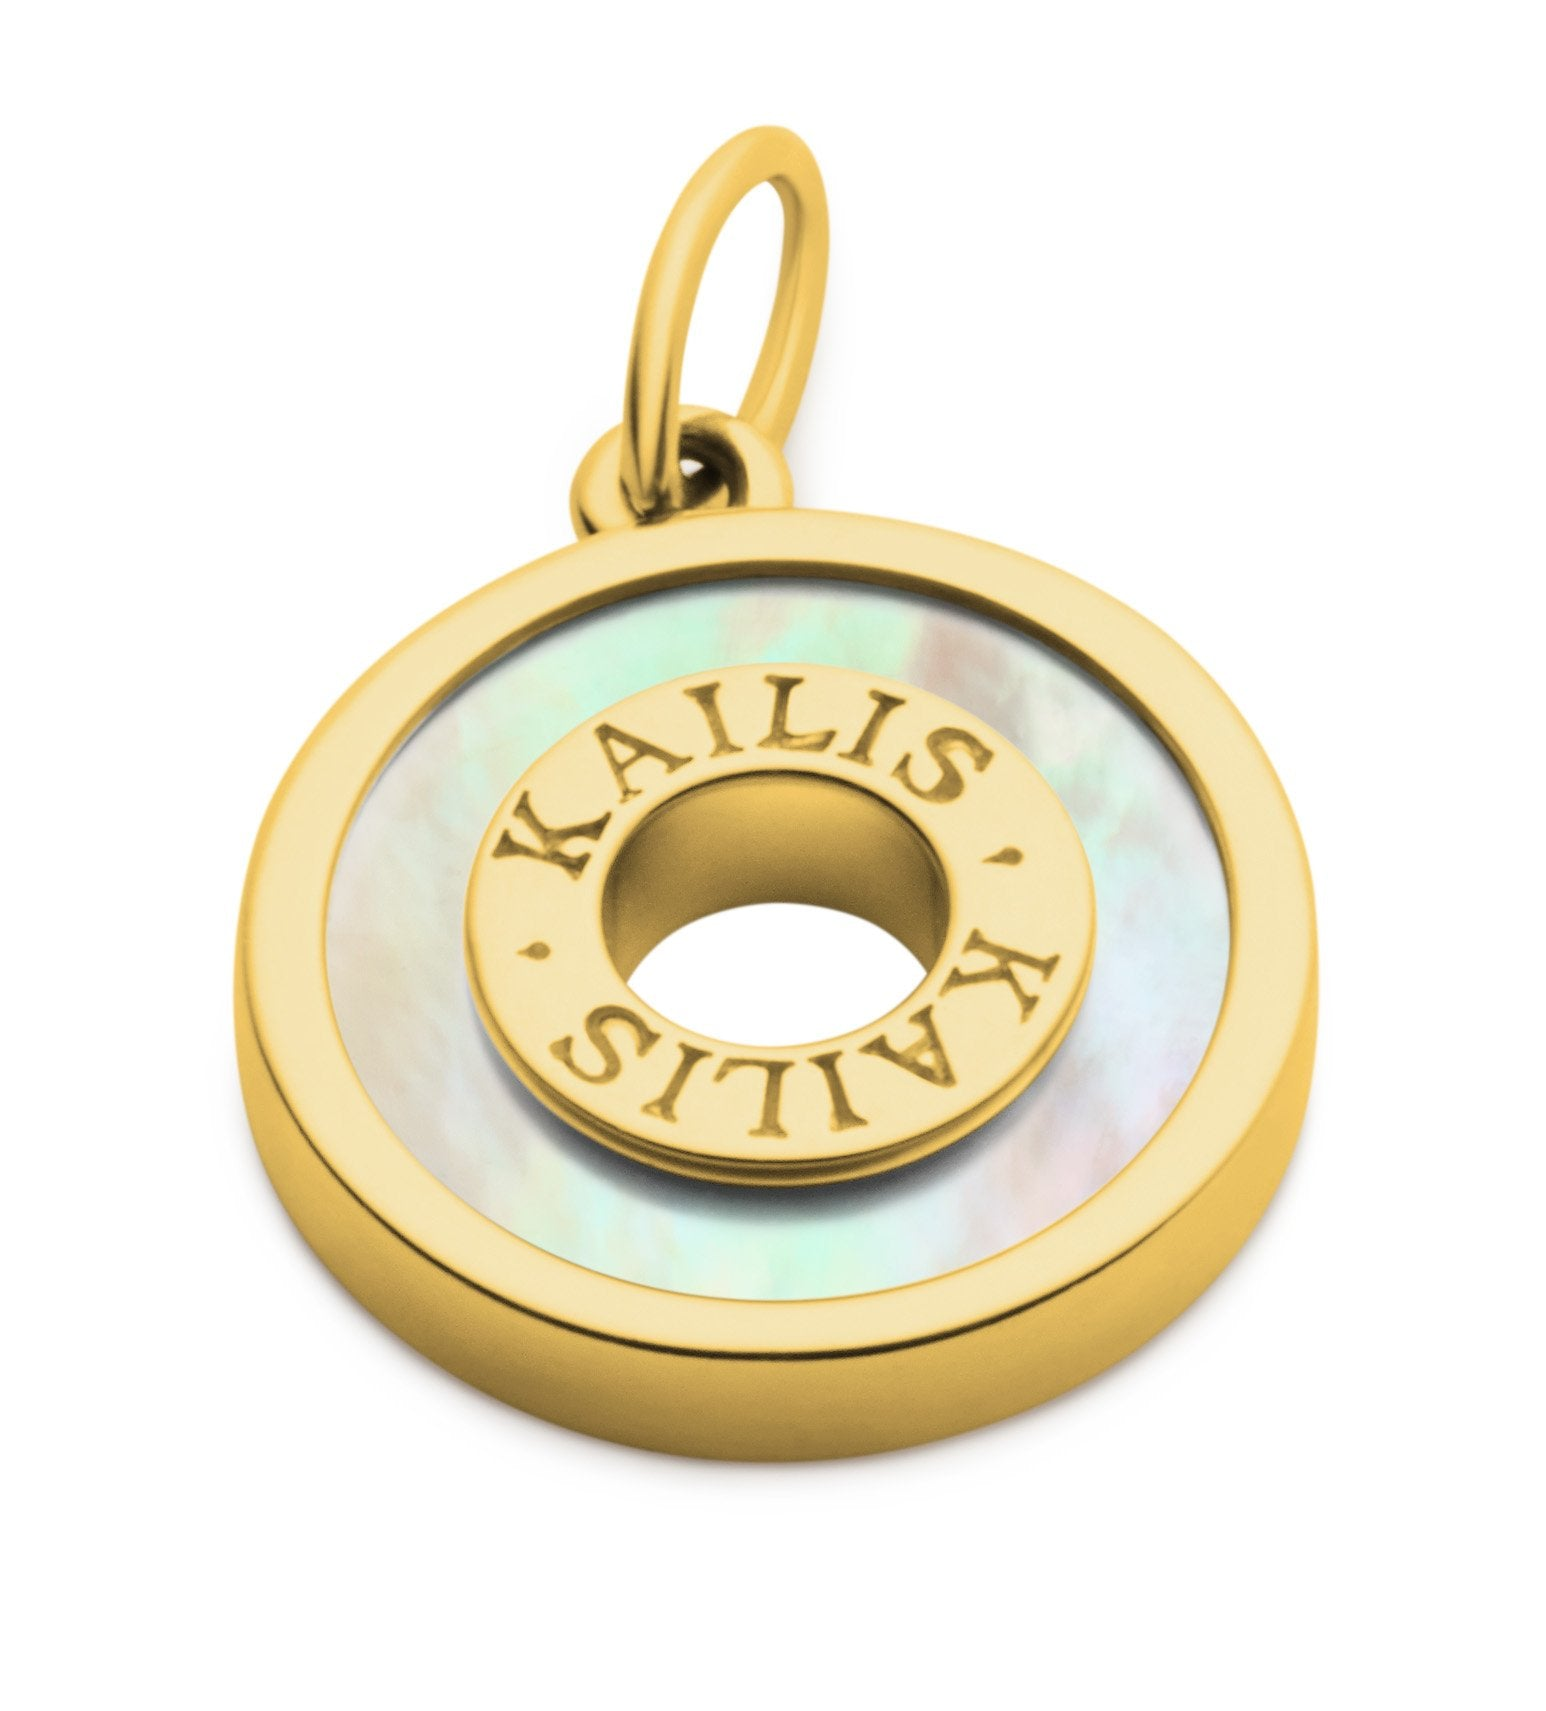 Kailis Mother of Pearl Charm, Yellow Gold